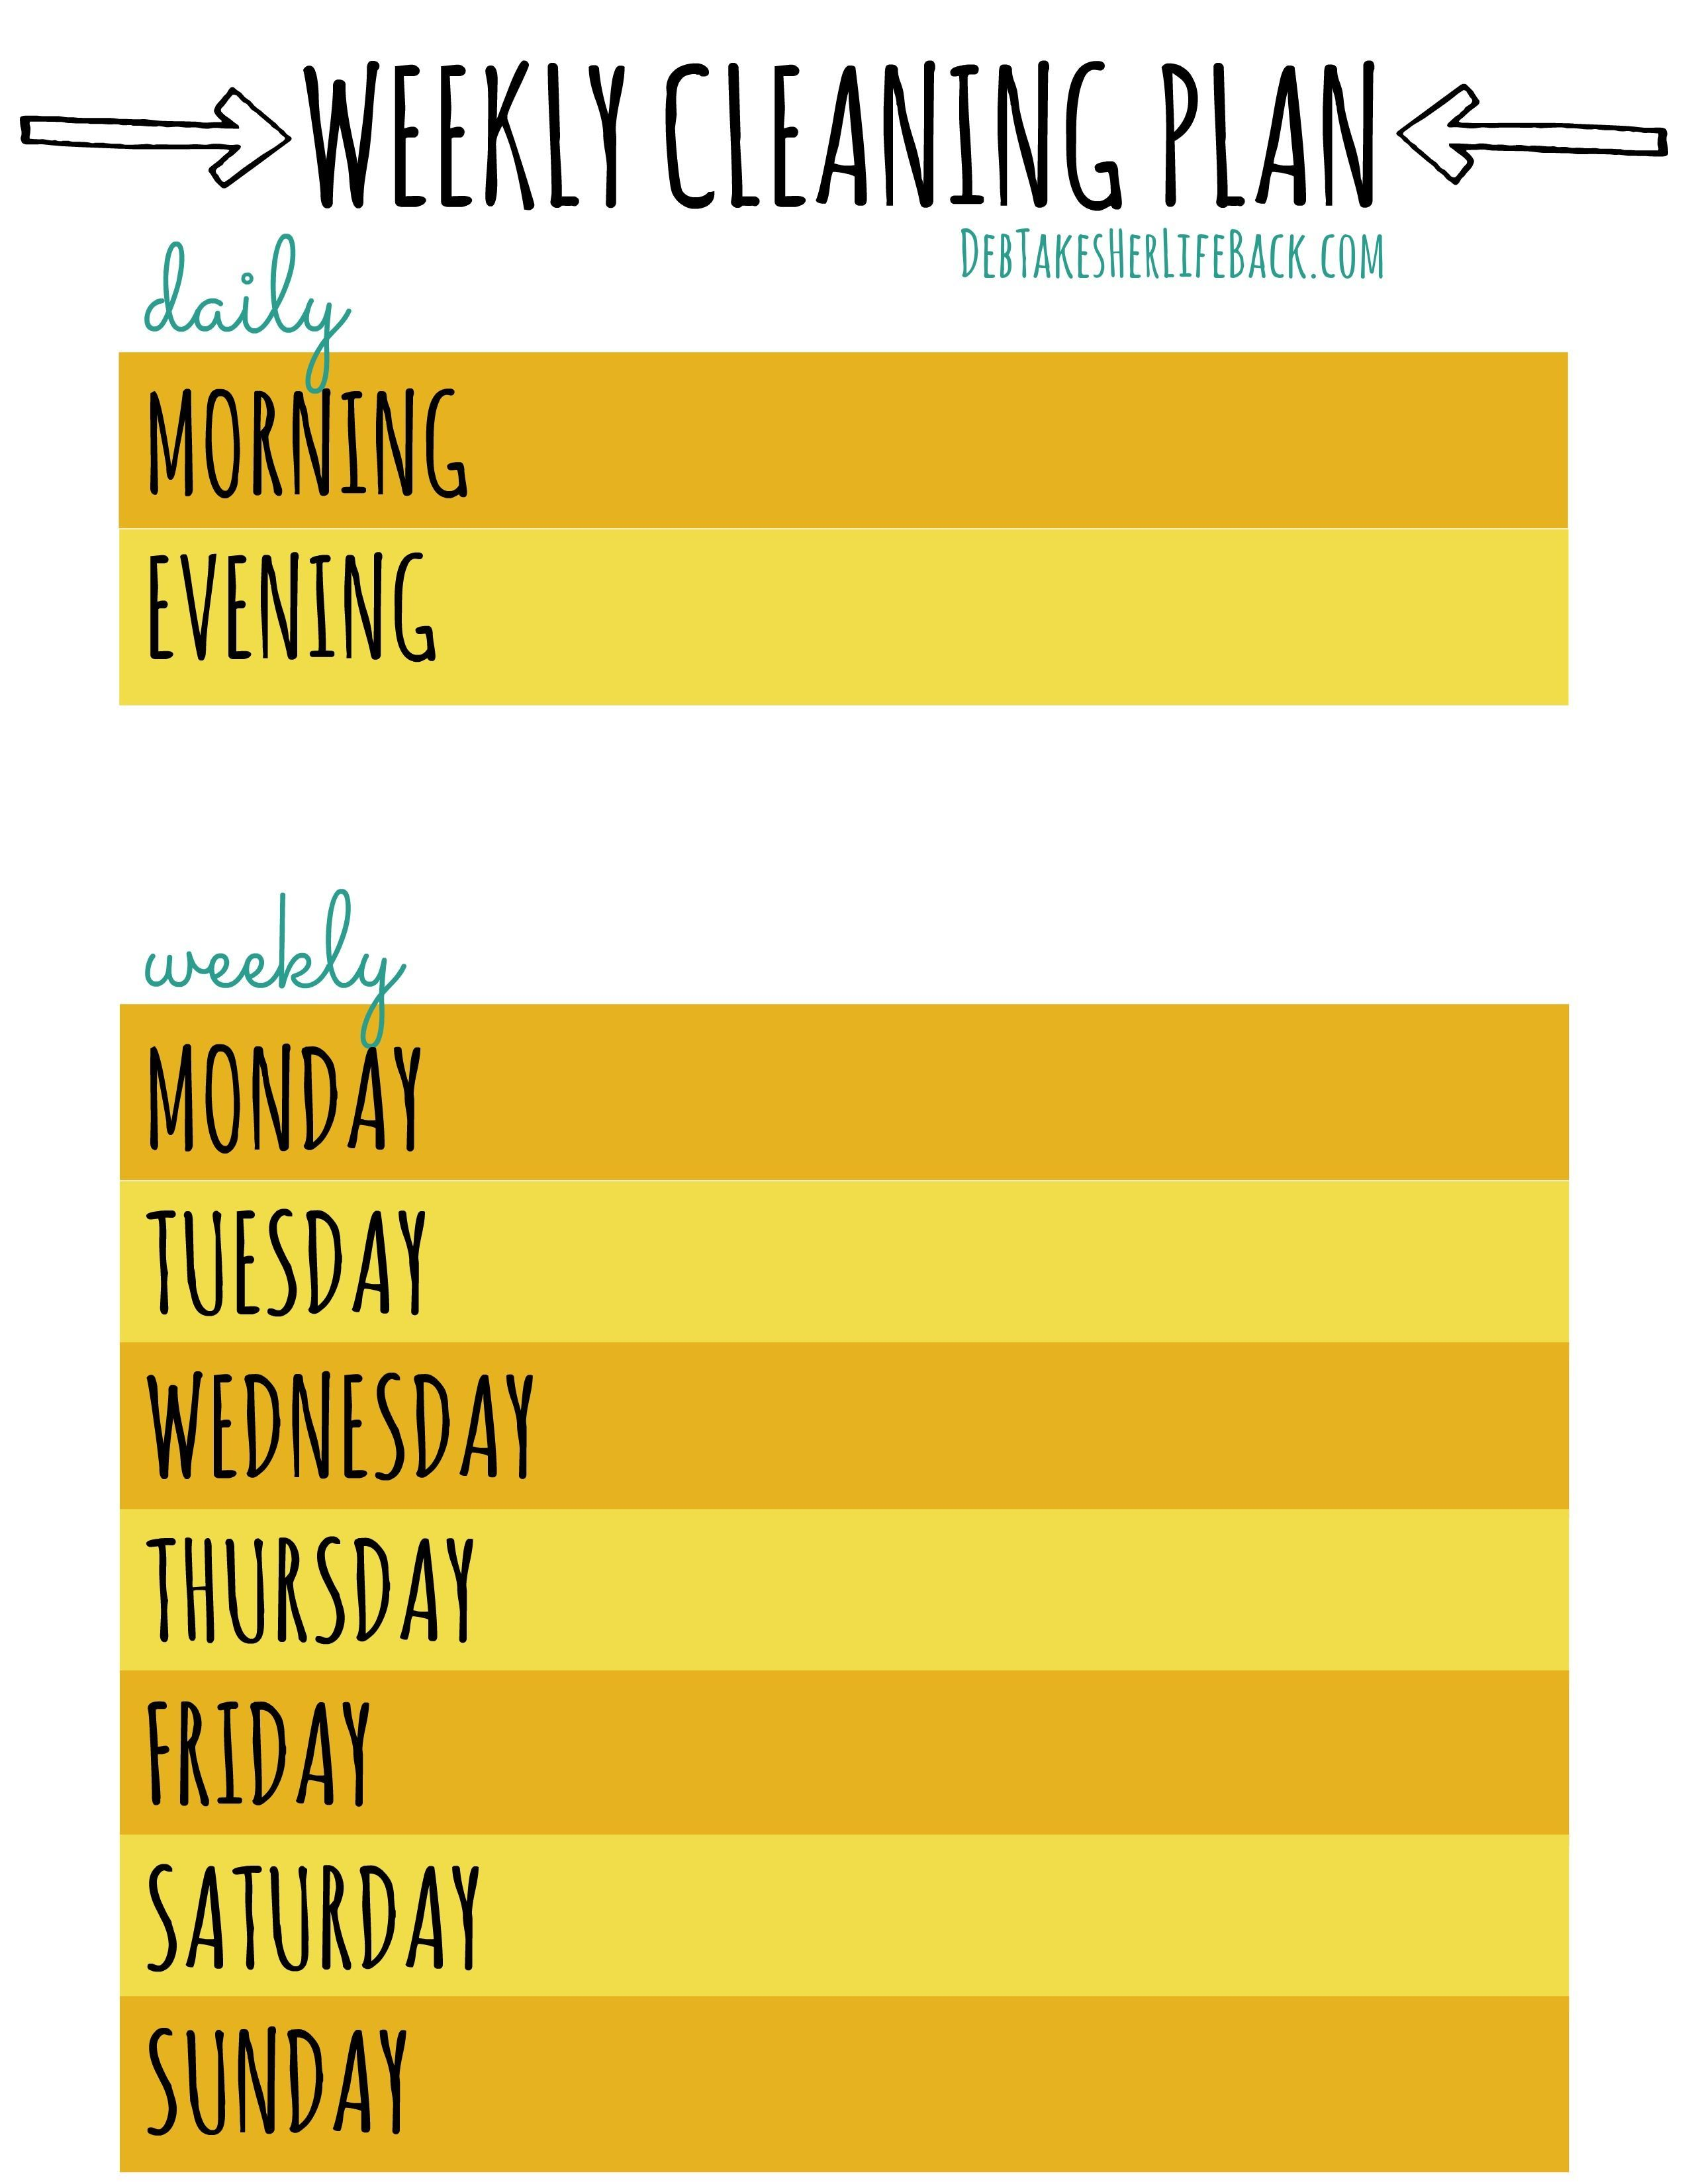 Weekly Cleaning Plan Free Download Weekly Cleaning Plan Weekly Cleaning How To Plan